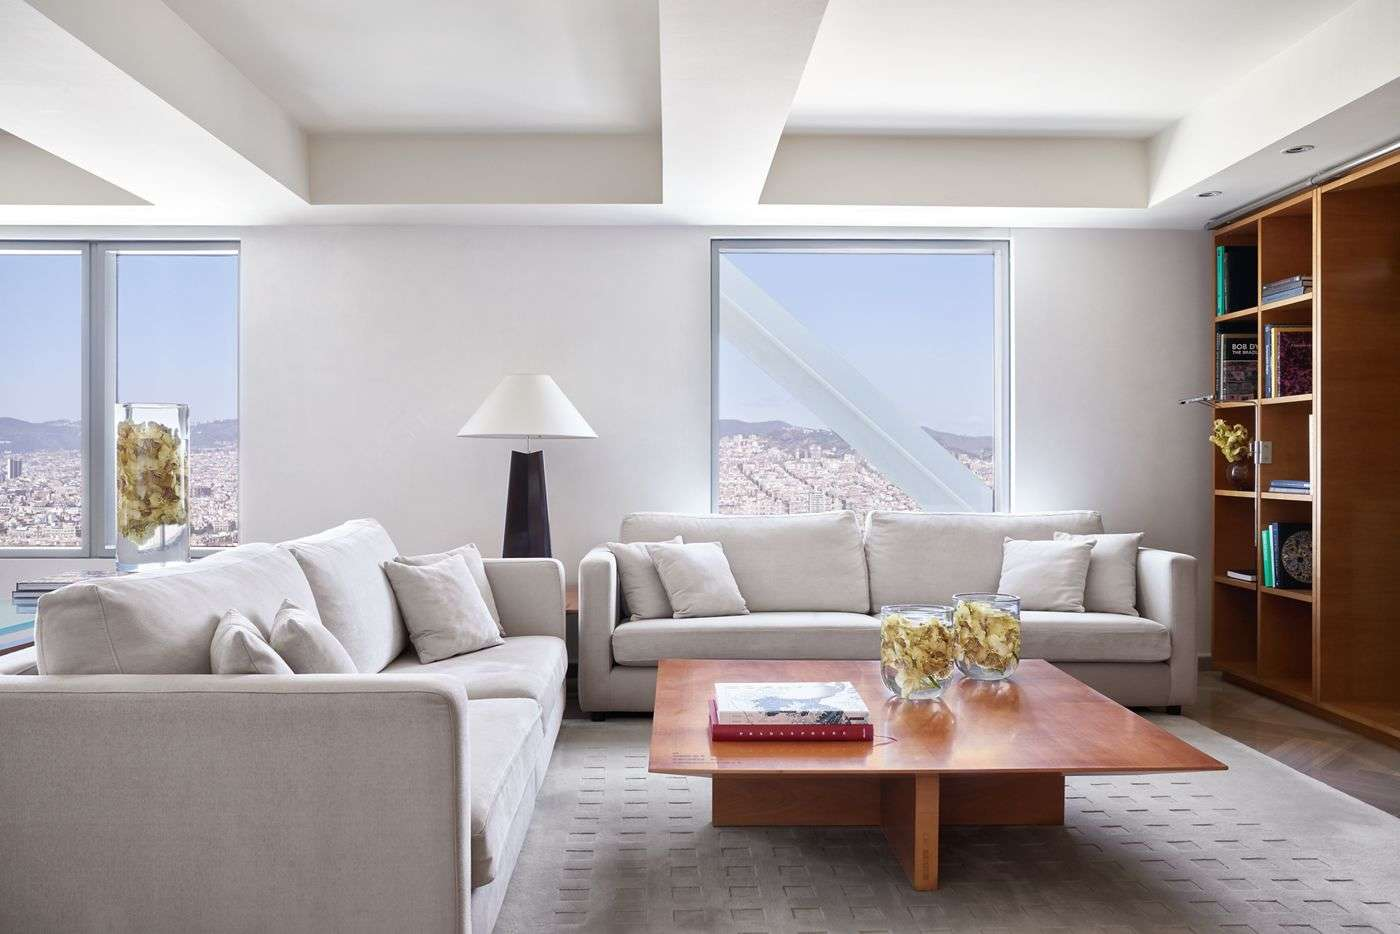 - 1 Bedroom Penthouse | Hotel Arts - Image 1/5